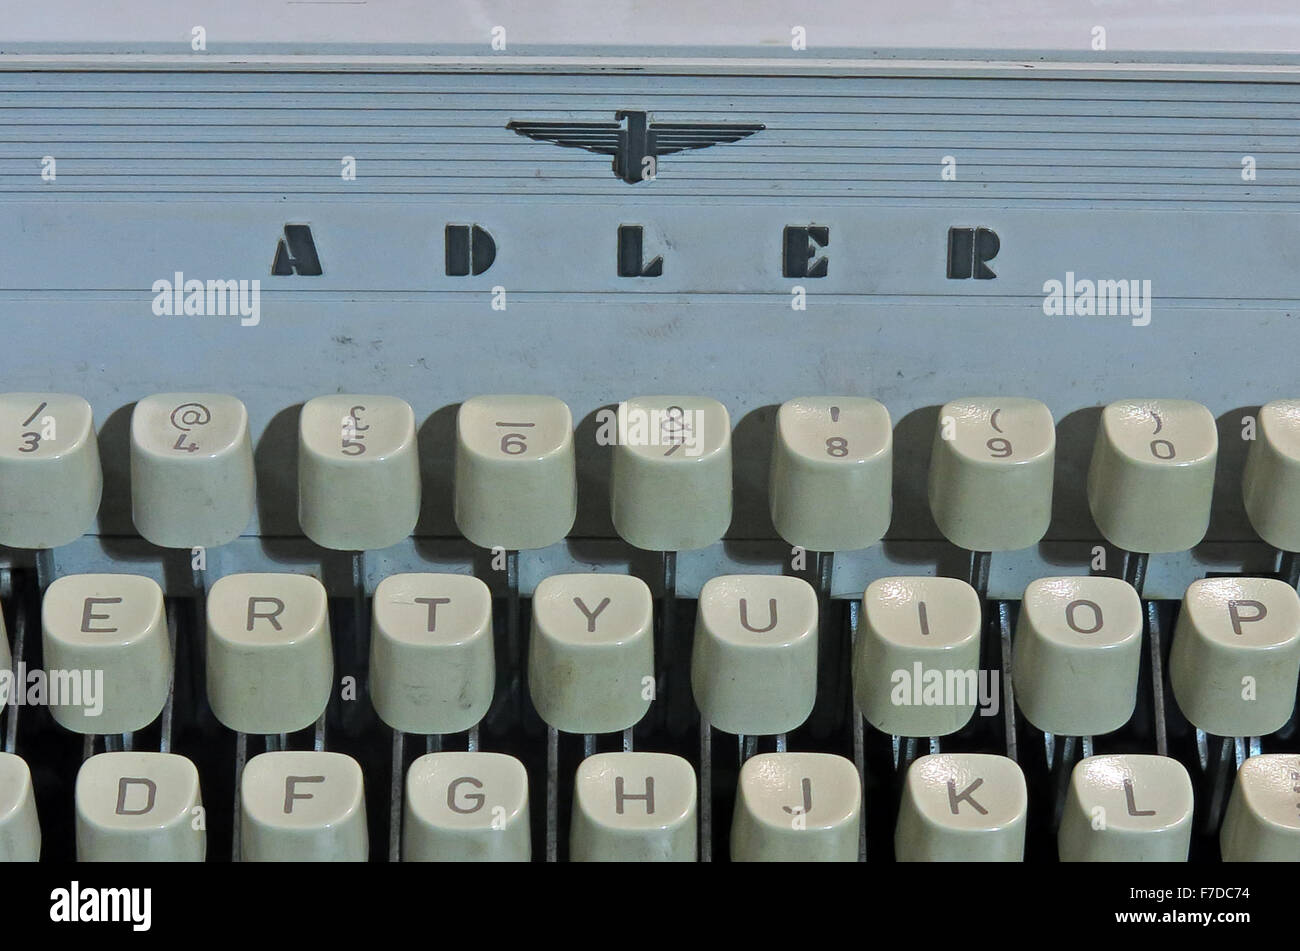 busines,letter,office,work,machine,technology,old,obsolete,tech,keys,keyboard,key,querty,retro,typed,azerty,vintage,brand,Gabriele,typewriter,author,tool,of,the,trade,Olivetti,company,TA,Royal,logo,old technology,Obsolete Technology,Tool,of,the,trade,Adler Logo,GoTonySmith,Buy Pictures of,Buy Images Of